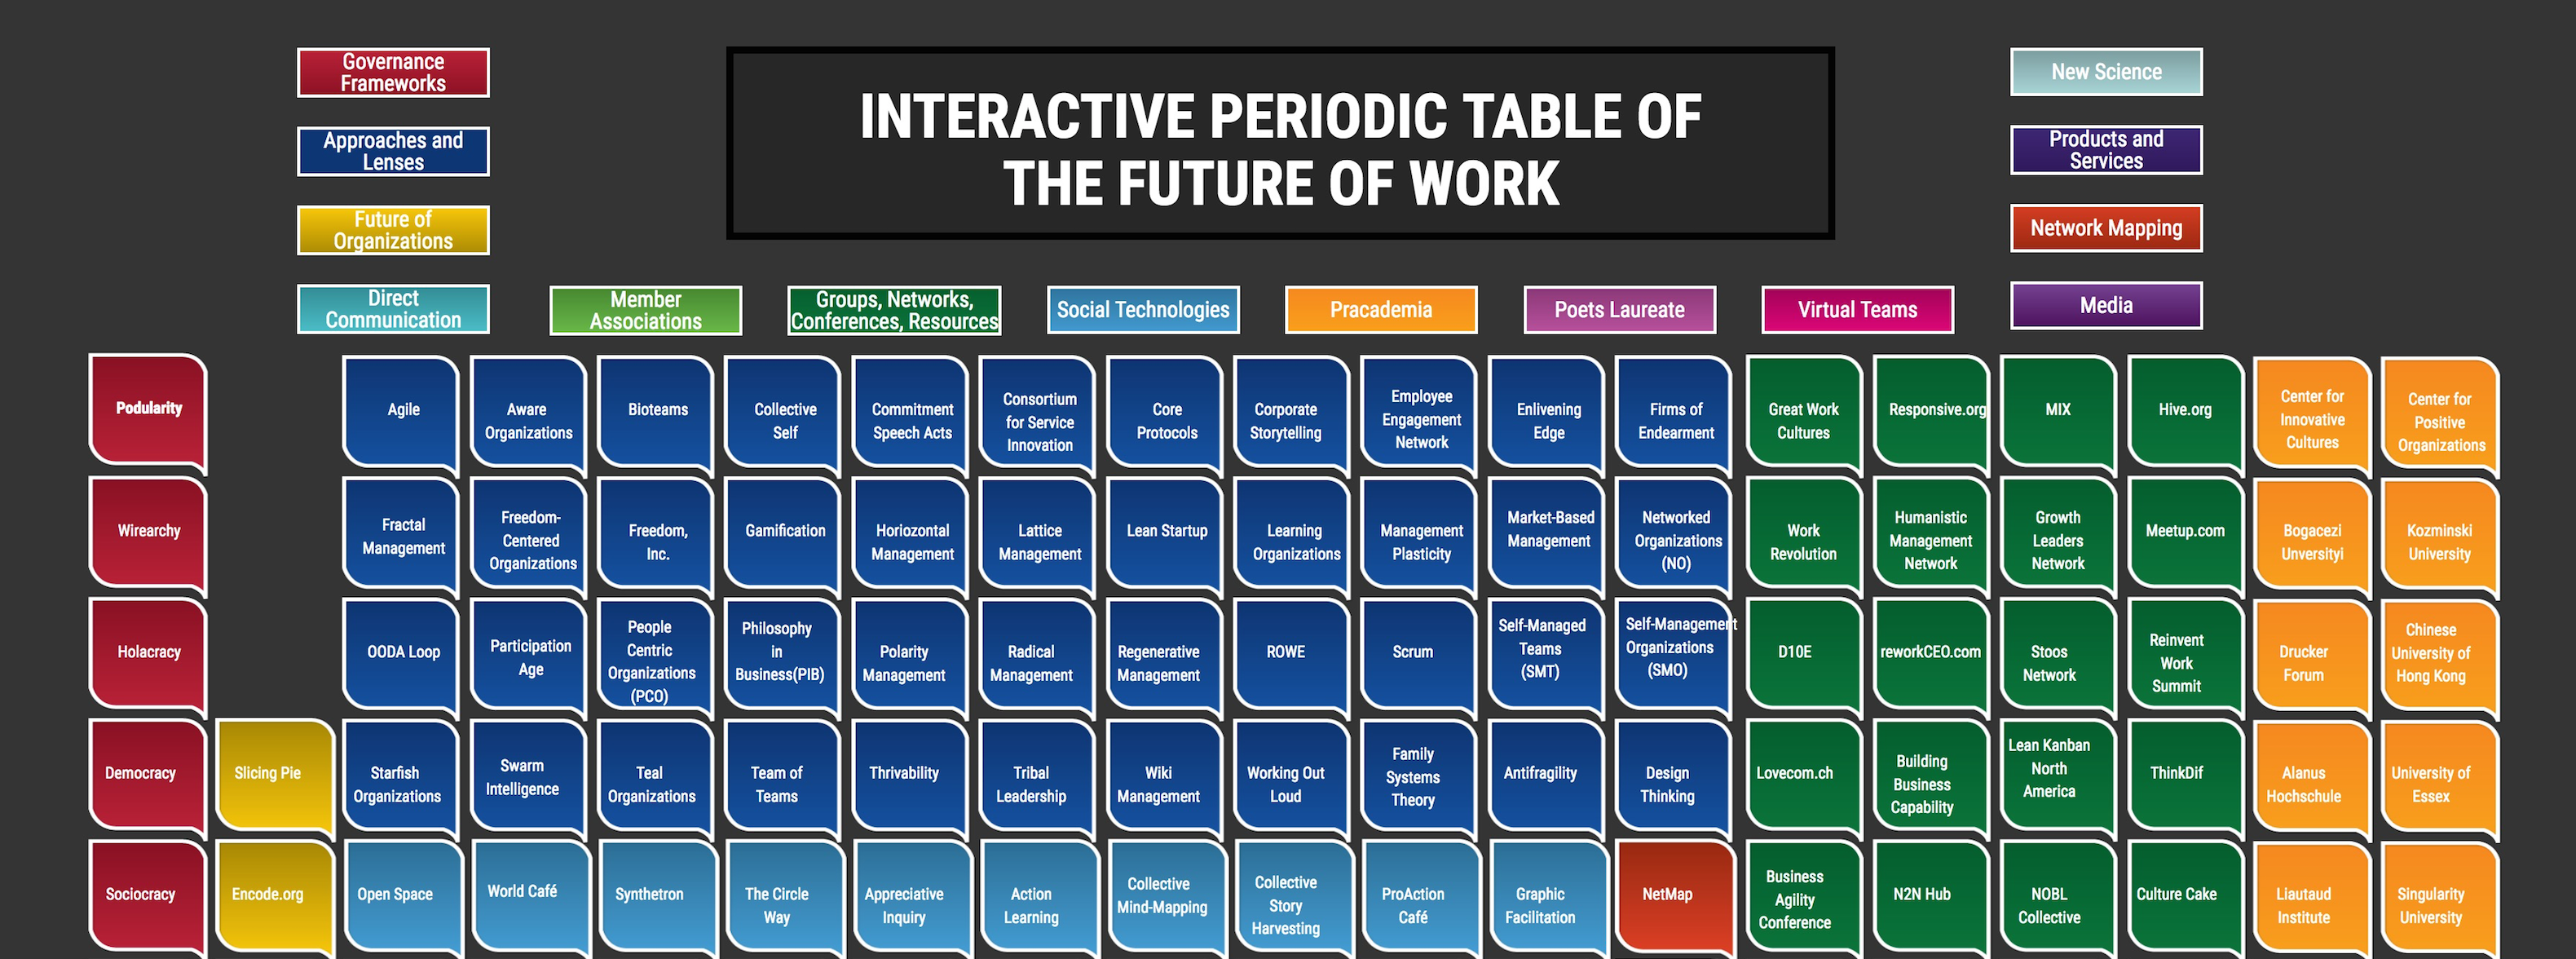 Interactive Periodic Table of the Future of Work